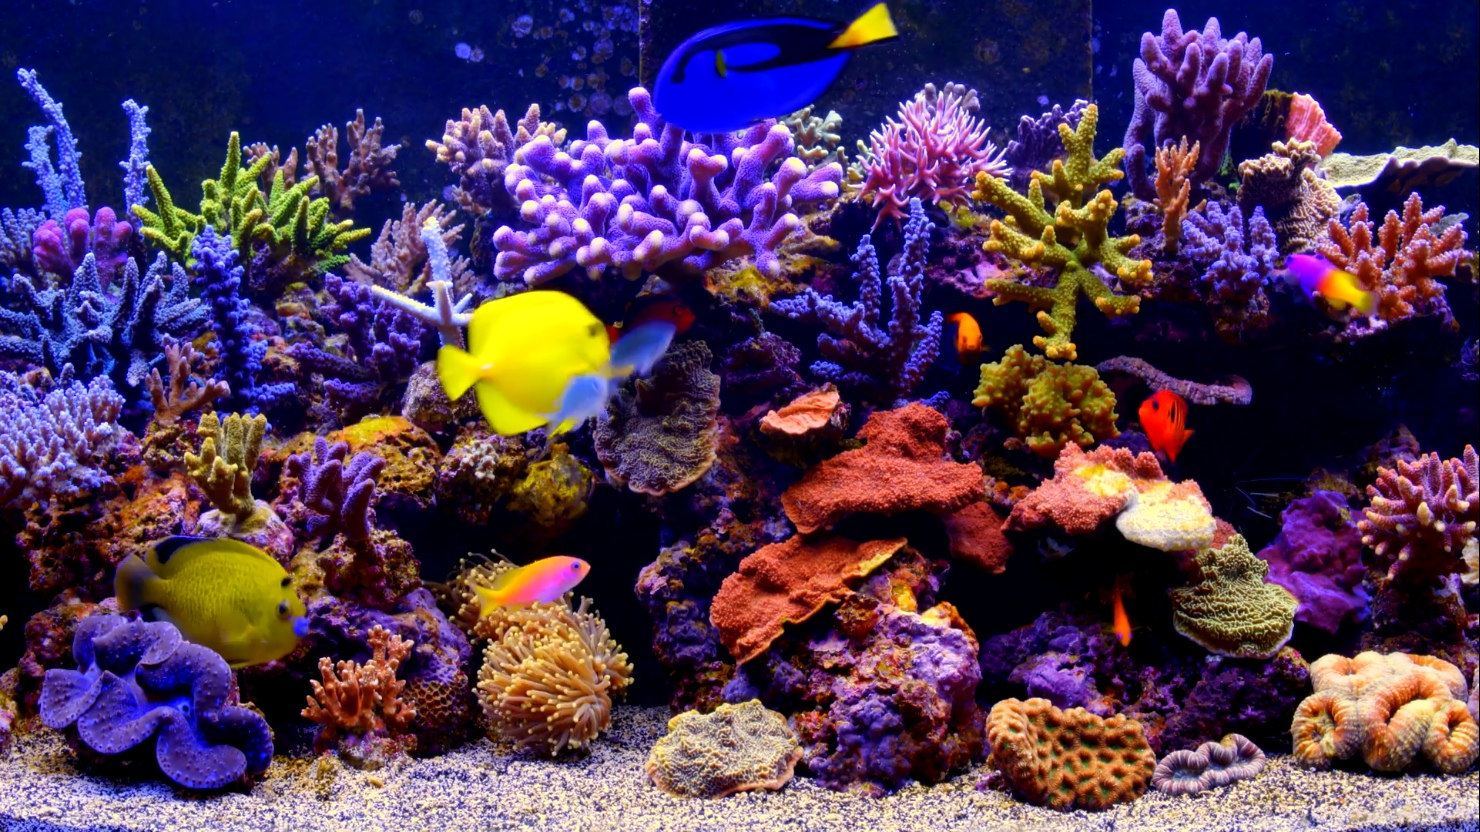 Aquarium Live Wallpaper by SmithJerry 1480x832